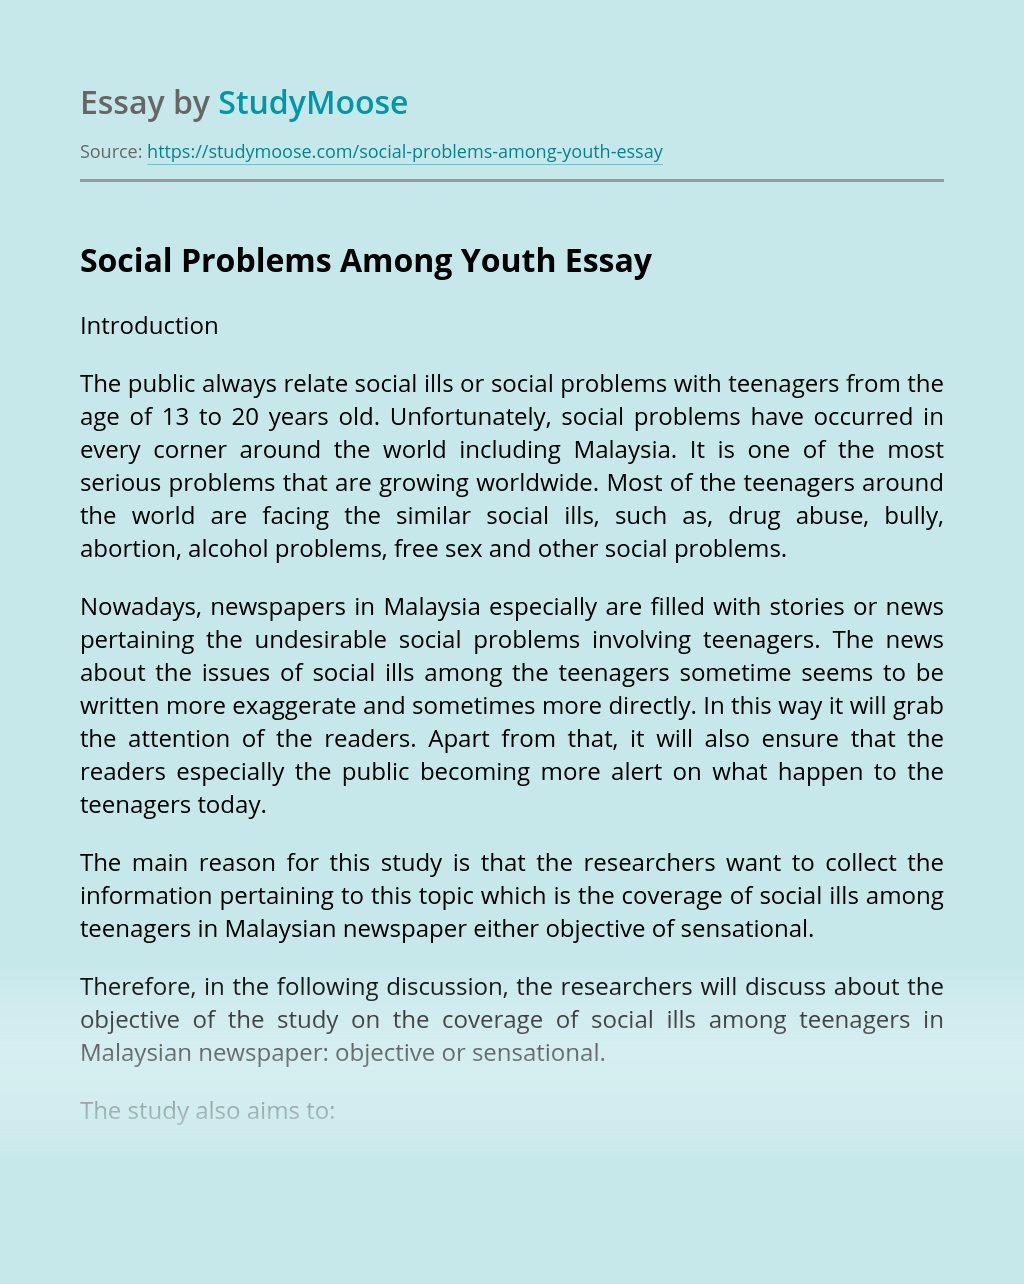 Social Problems Among Youth